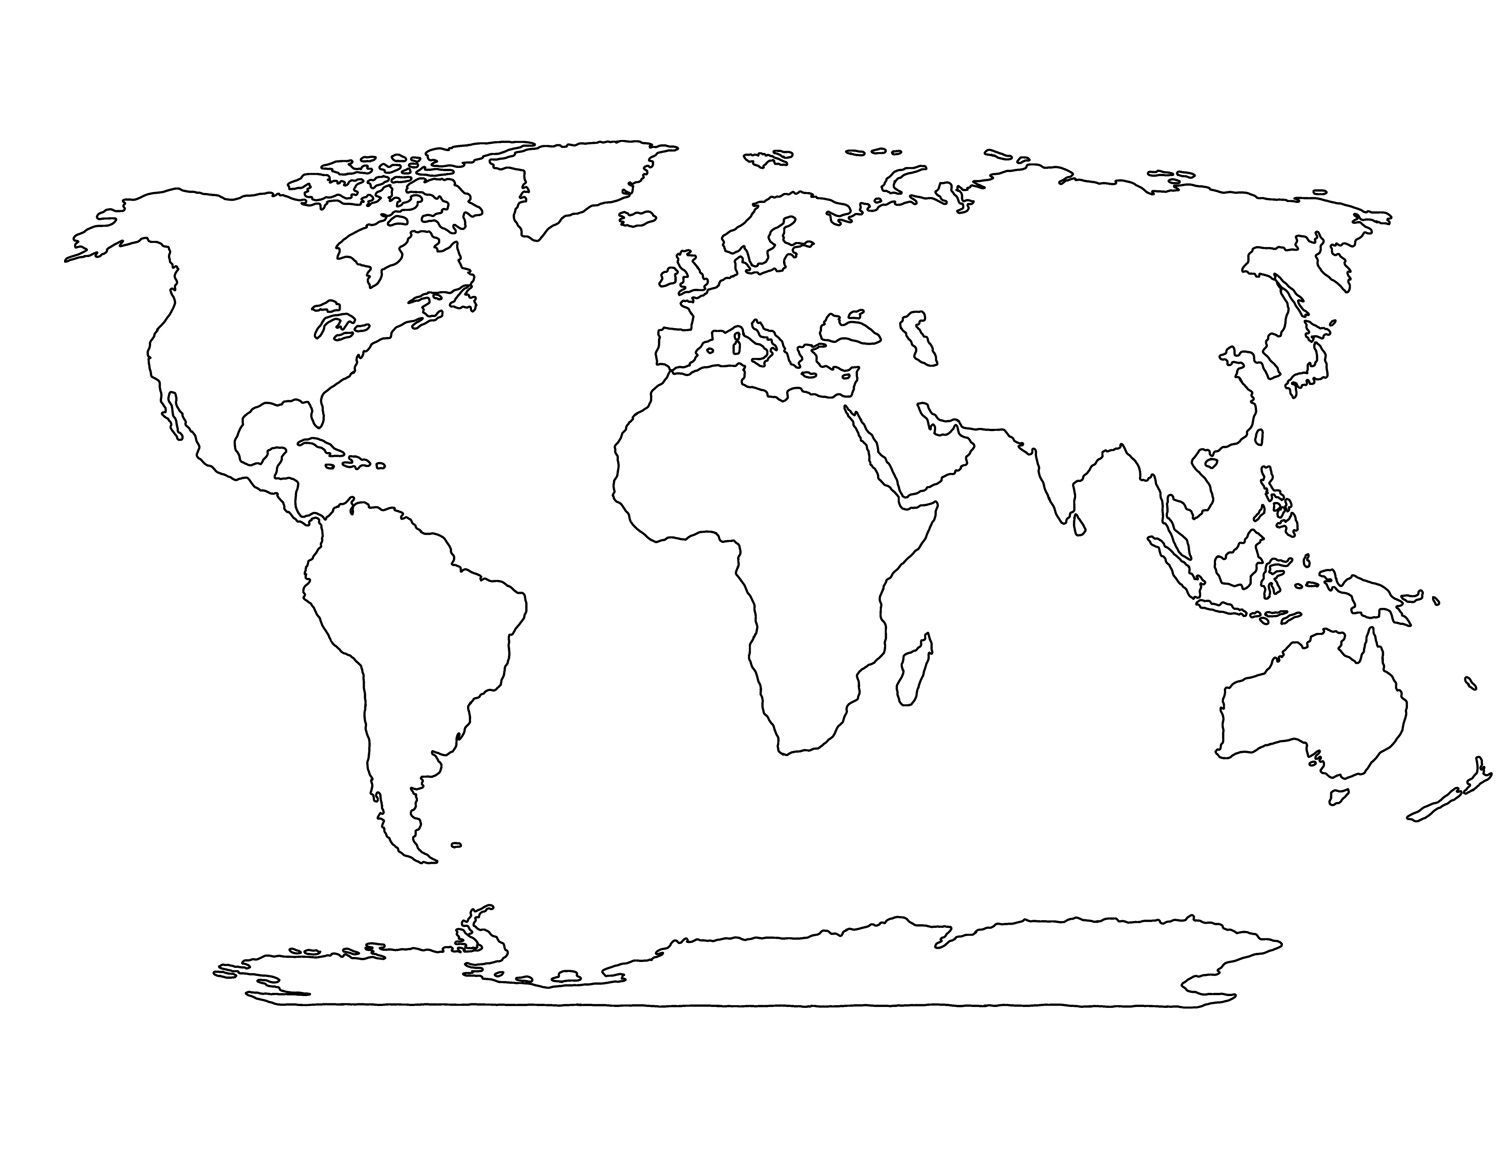 Blank World Map Printable | Social studies | World map template ...